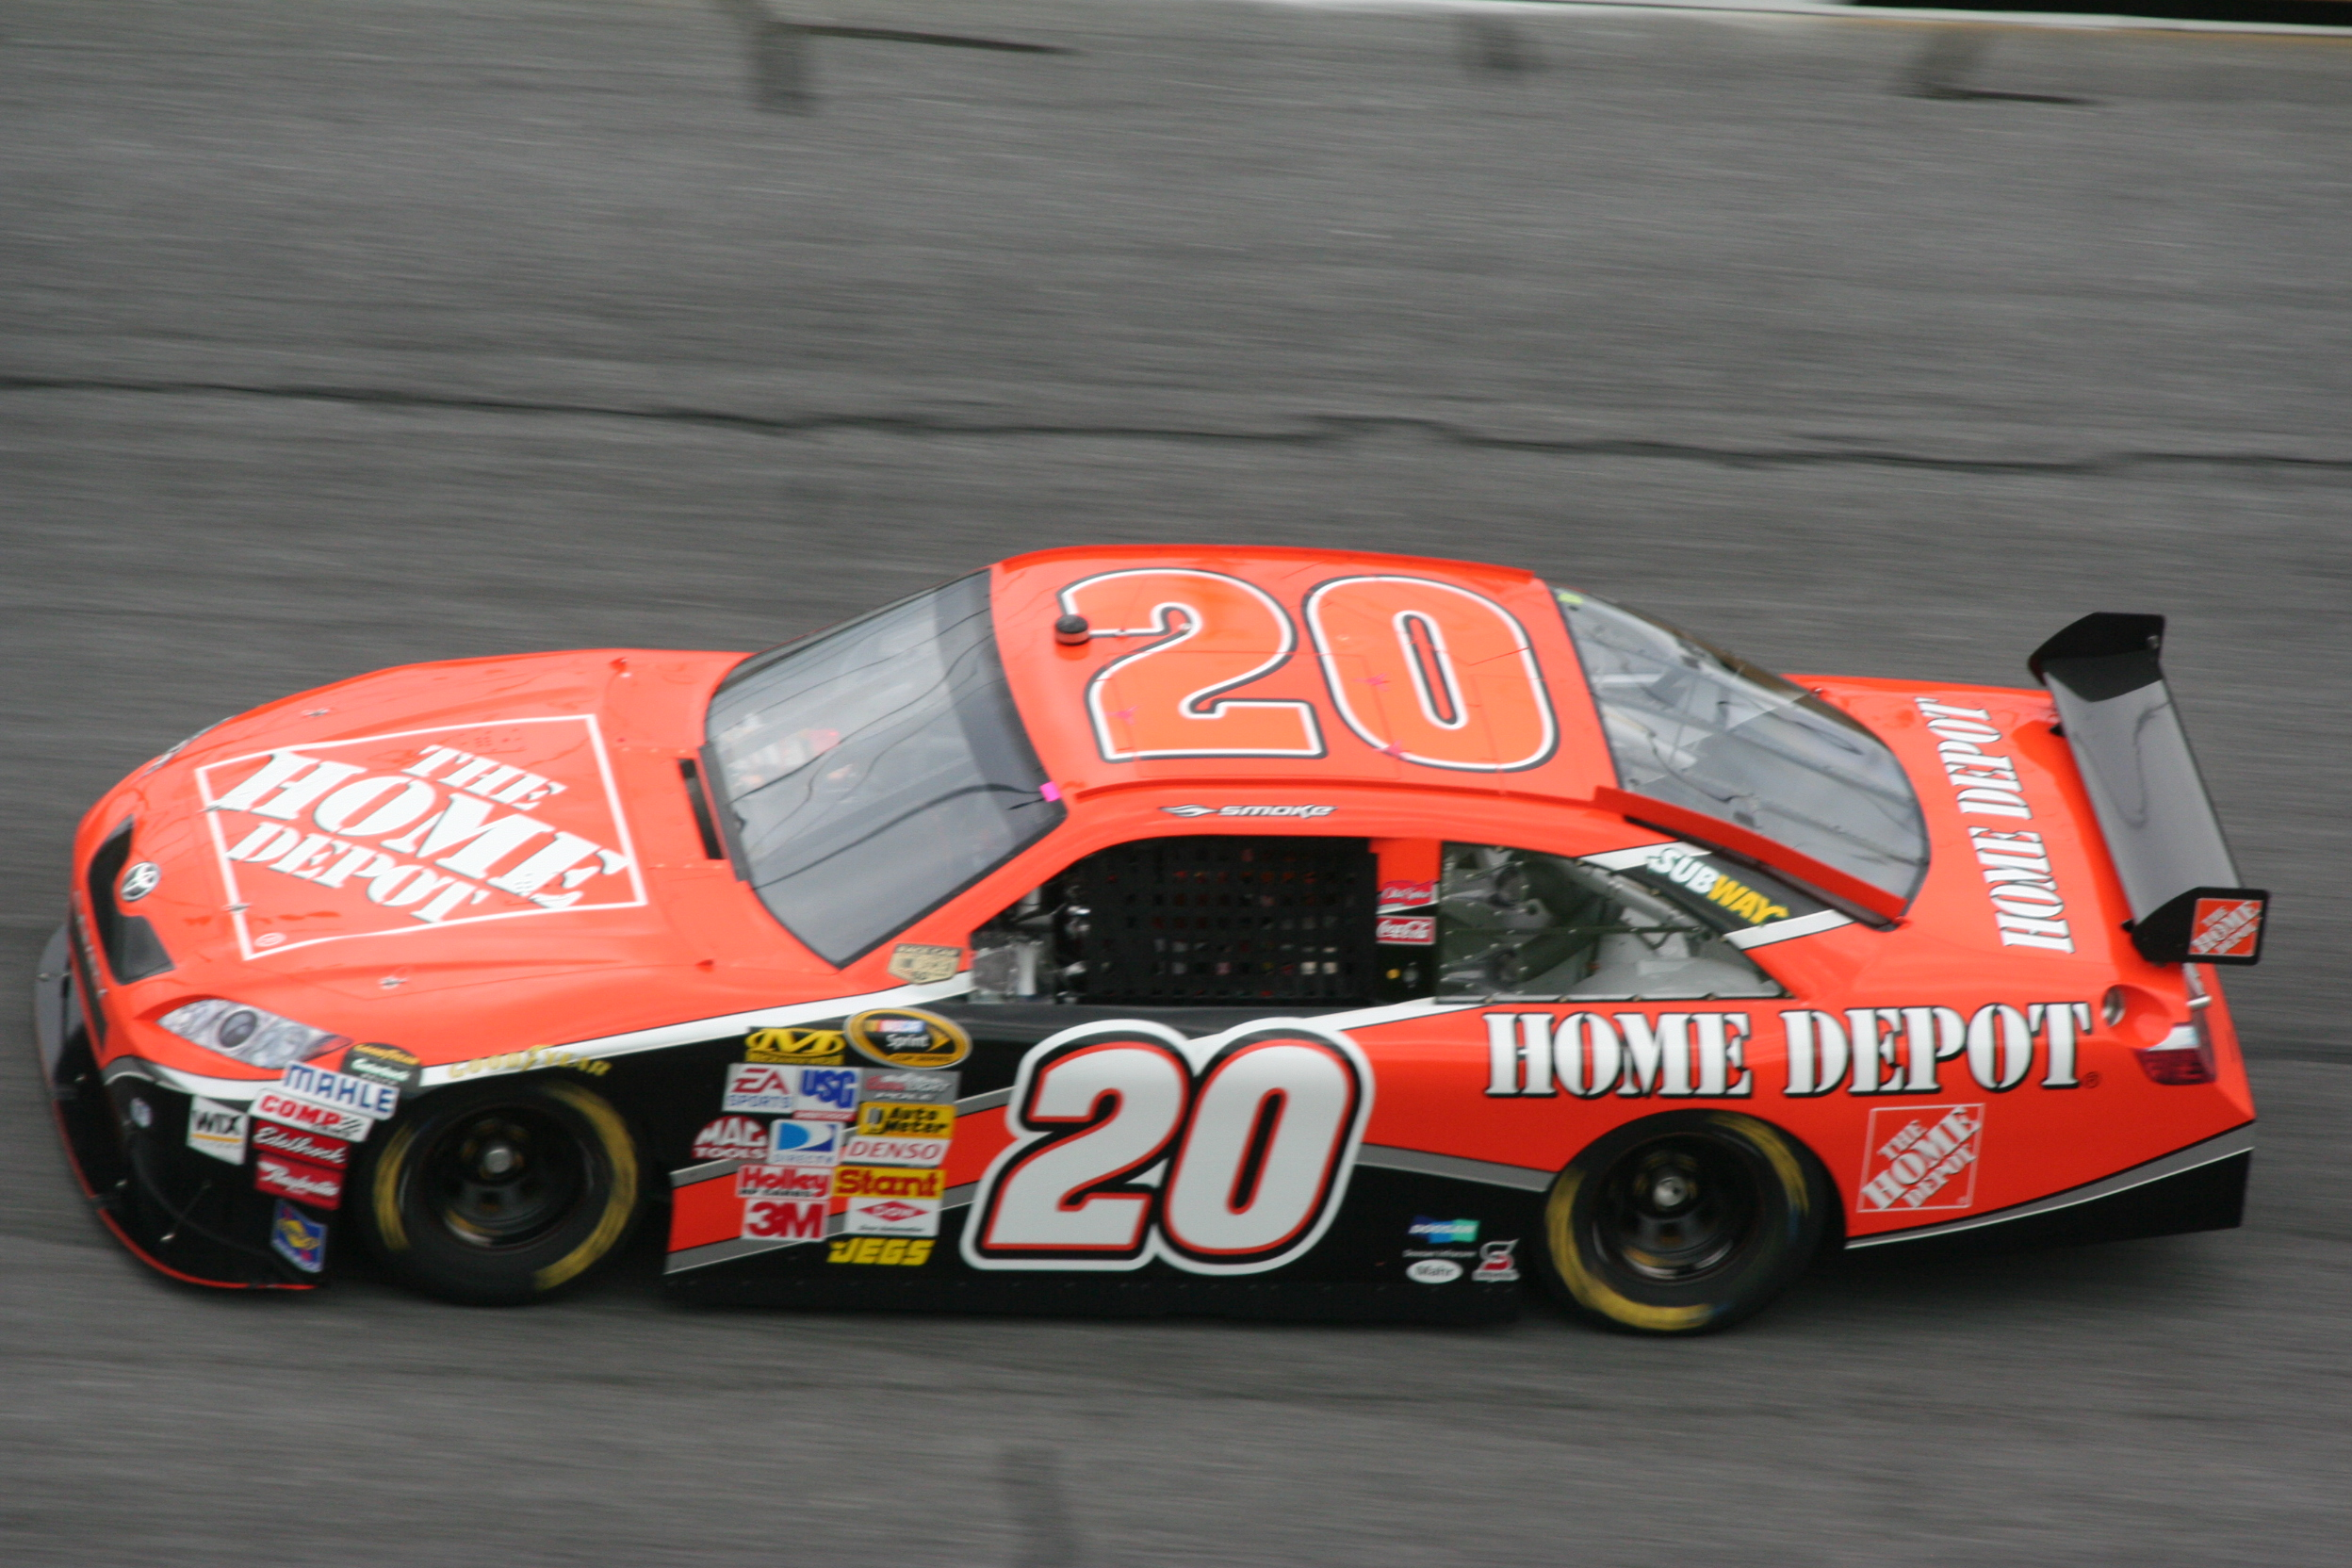 the home depot car driven by tony stewart in the nascar sprint cup series in 2008